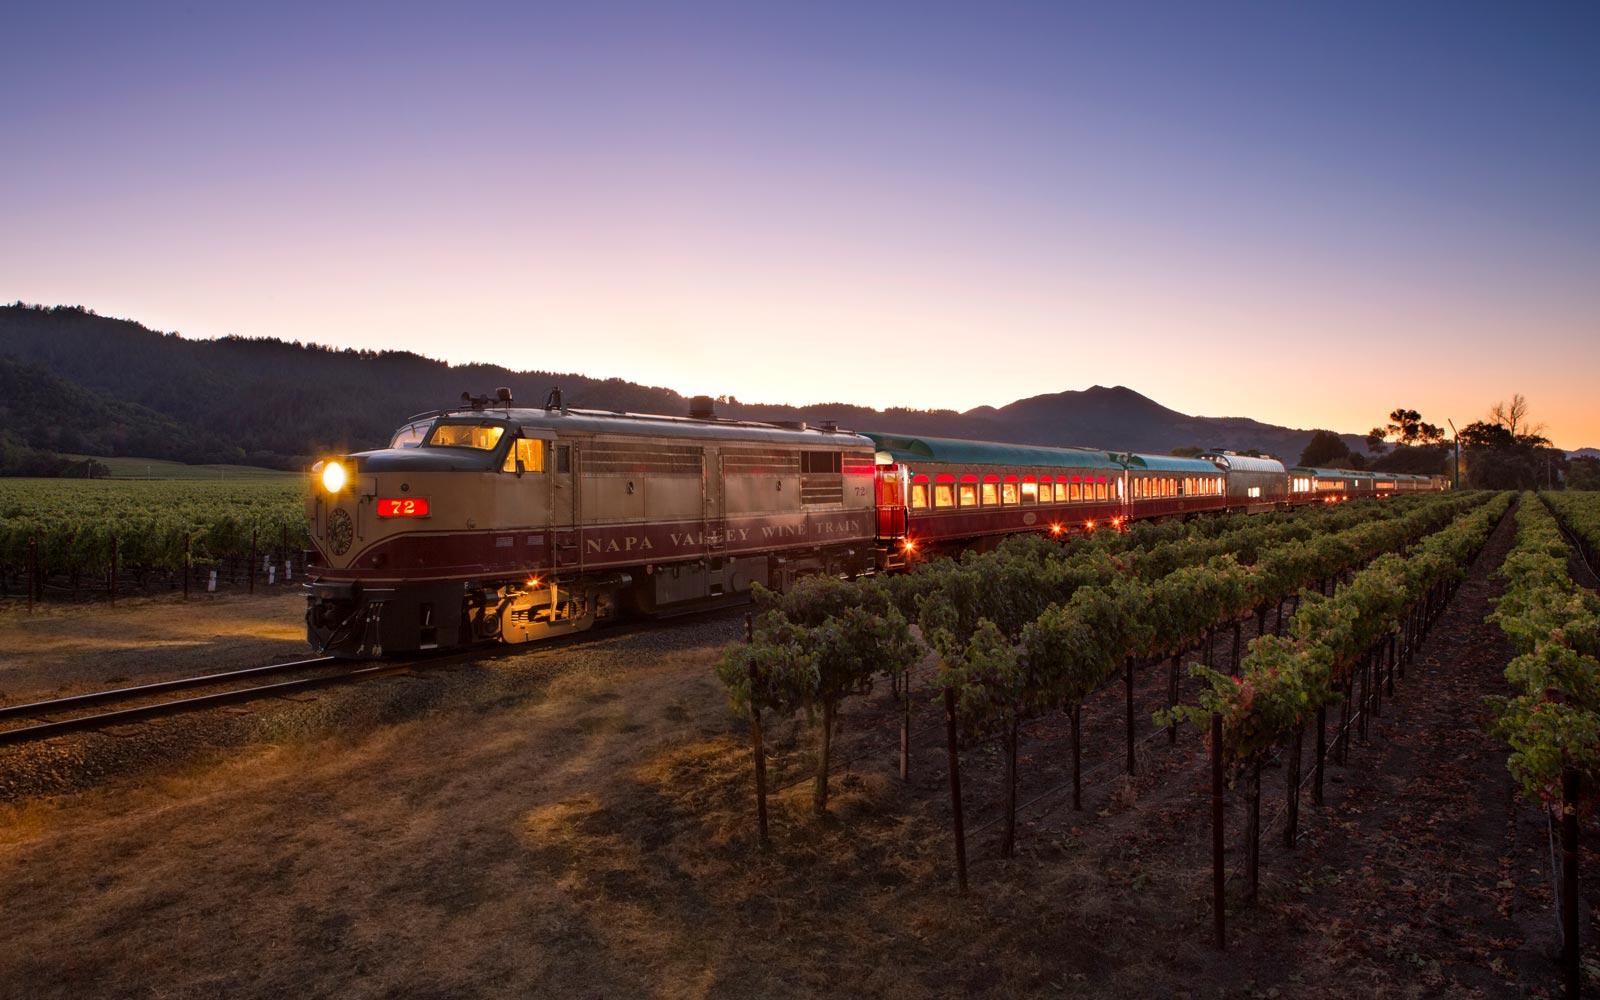 The Napa Valley Wine Train Is Transforming for an '80s-themed Murder Mystery Ride